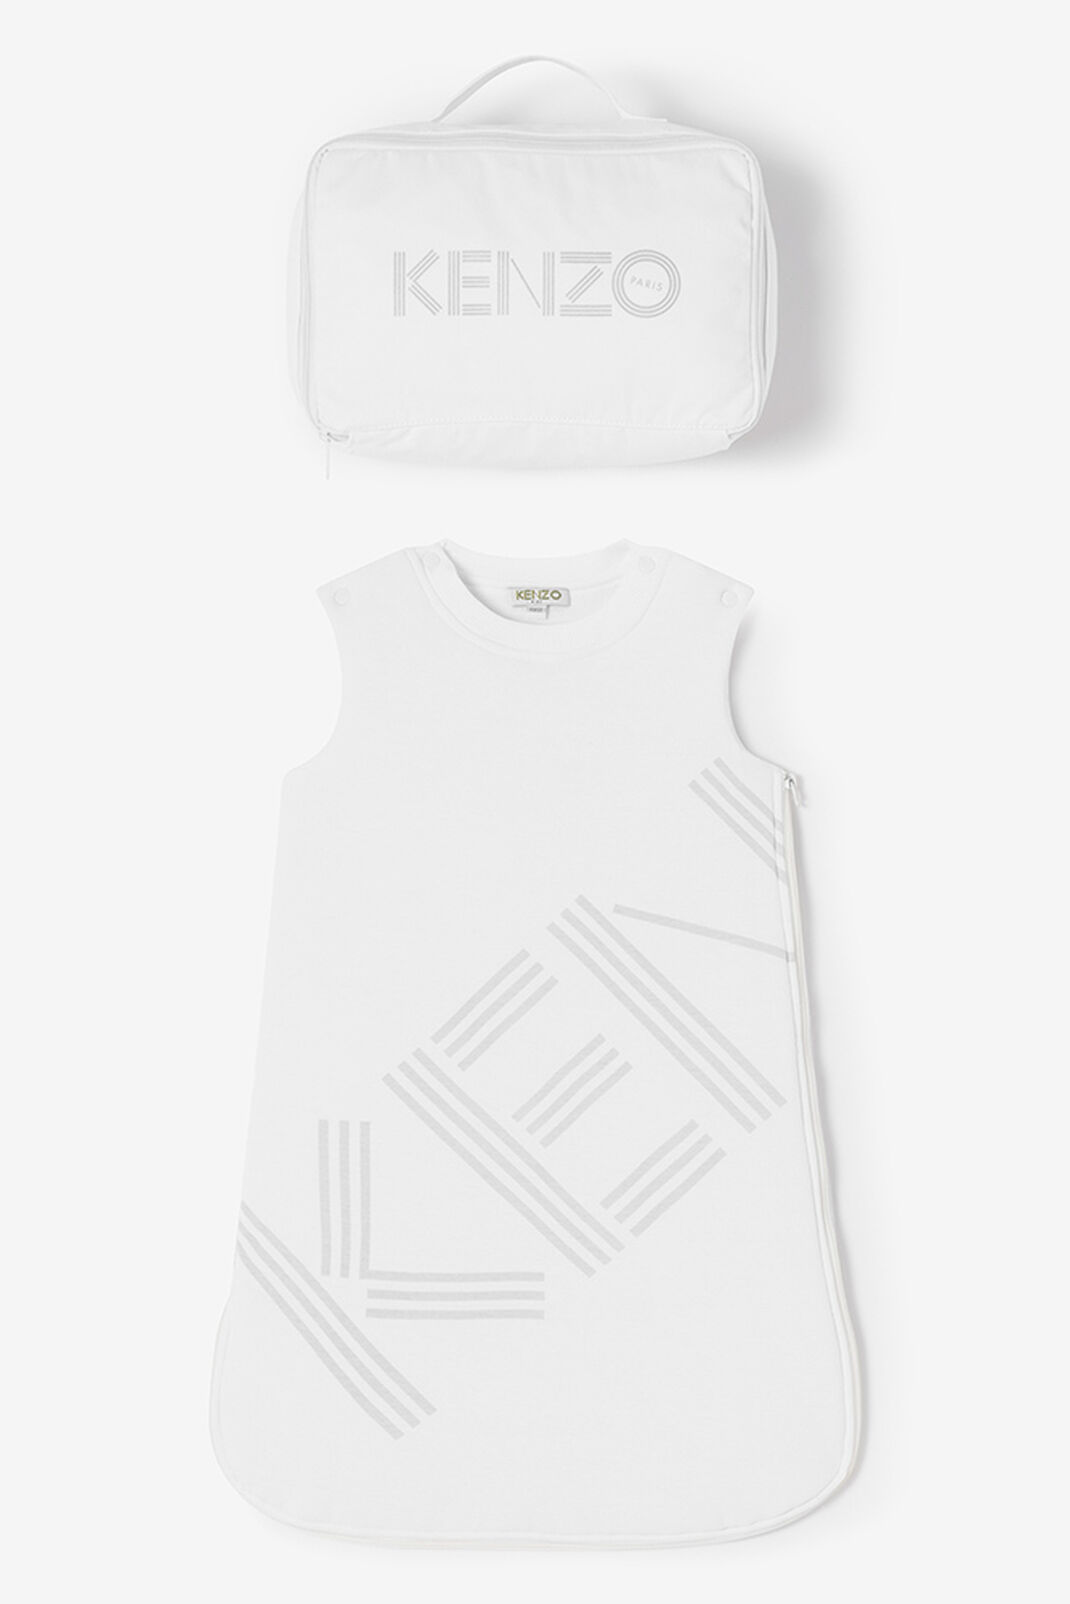 WHITE KENZO Logo Sleeping Bag for women